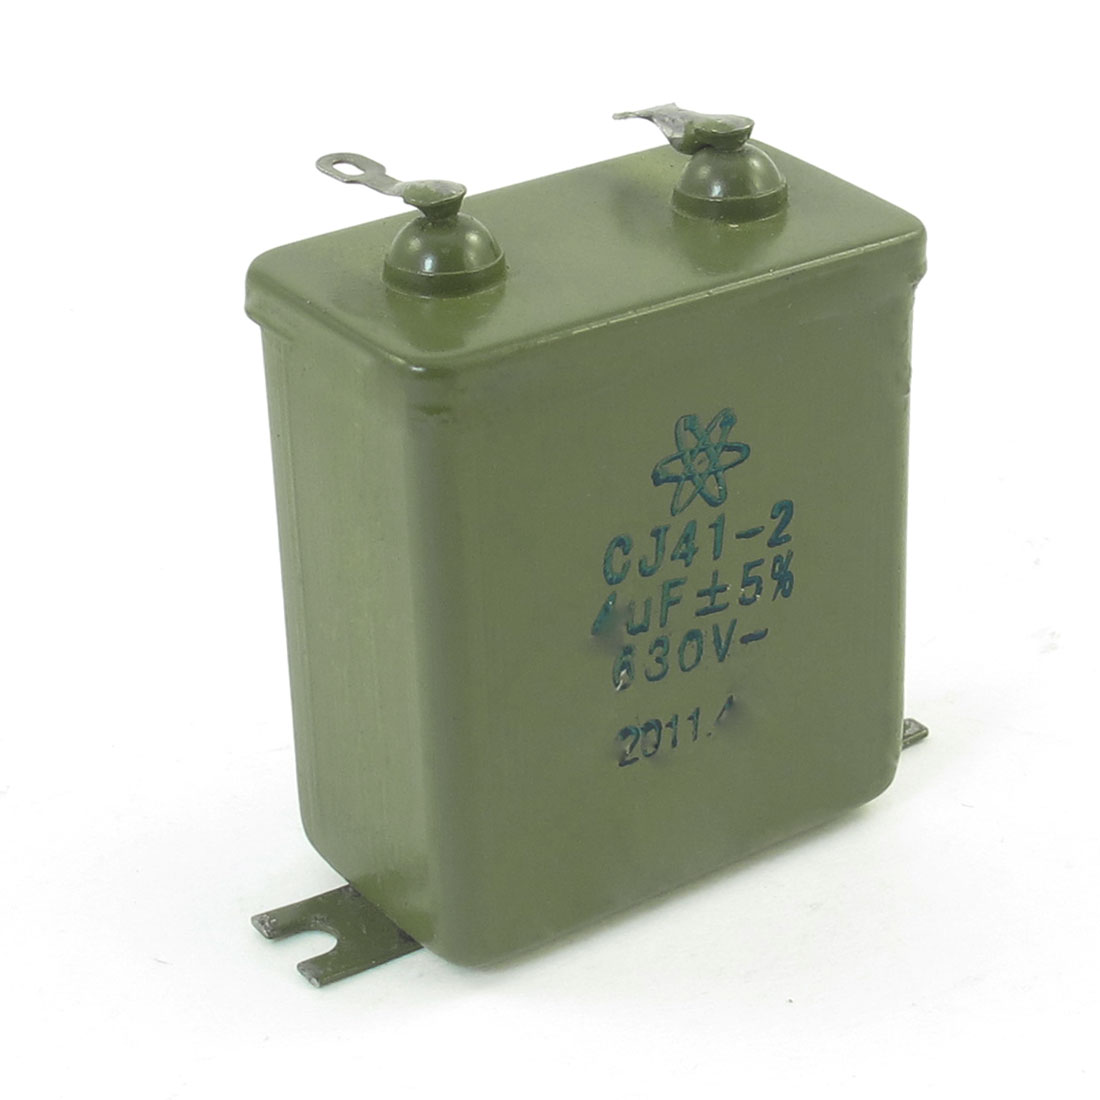 Rectangle Metalized Paper Capacitor Audio Filter CJ41-2 4uF 630V 5%